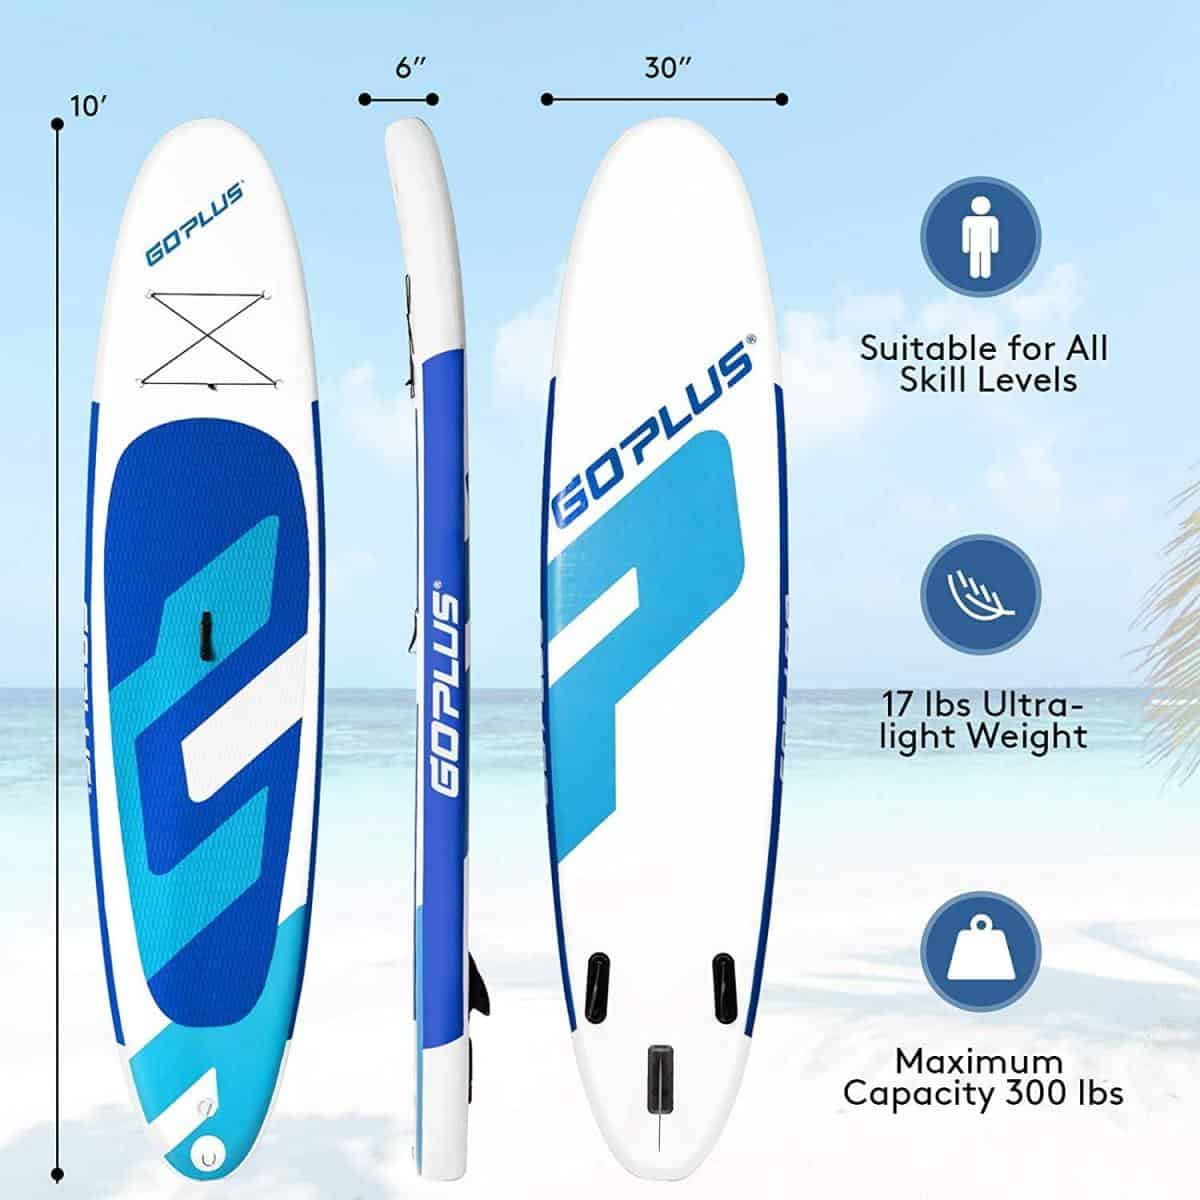 Goplus Inflatable Stand Up Paddle Board, 10ft/11ft SUP With Accessory Pack, Adjustable Paddle, Carry Bag, Bottom Fin, Hand Pump, Leash And Repair Kit Blue 10FT Review Image 1